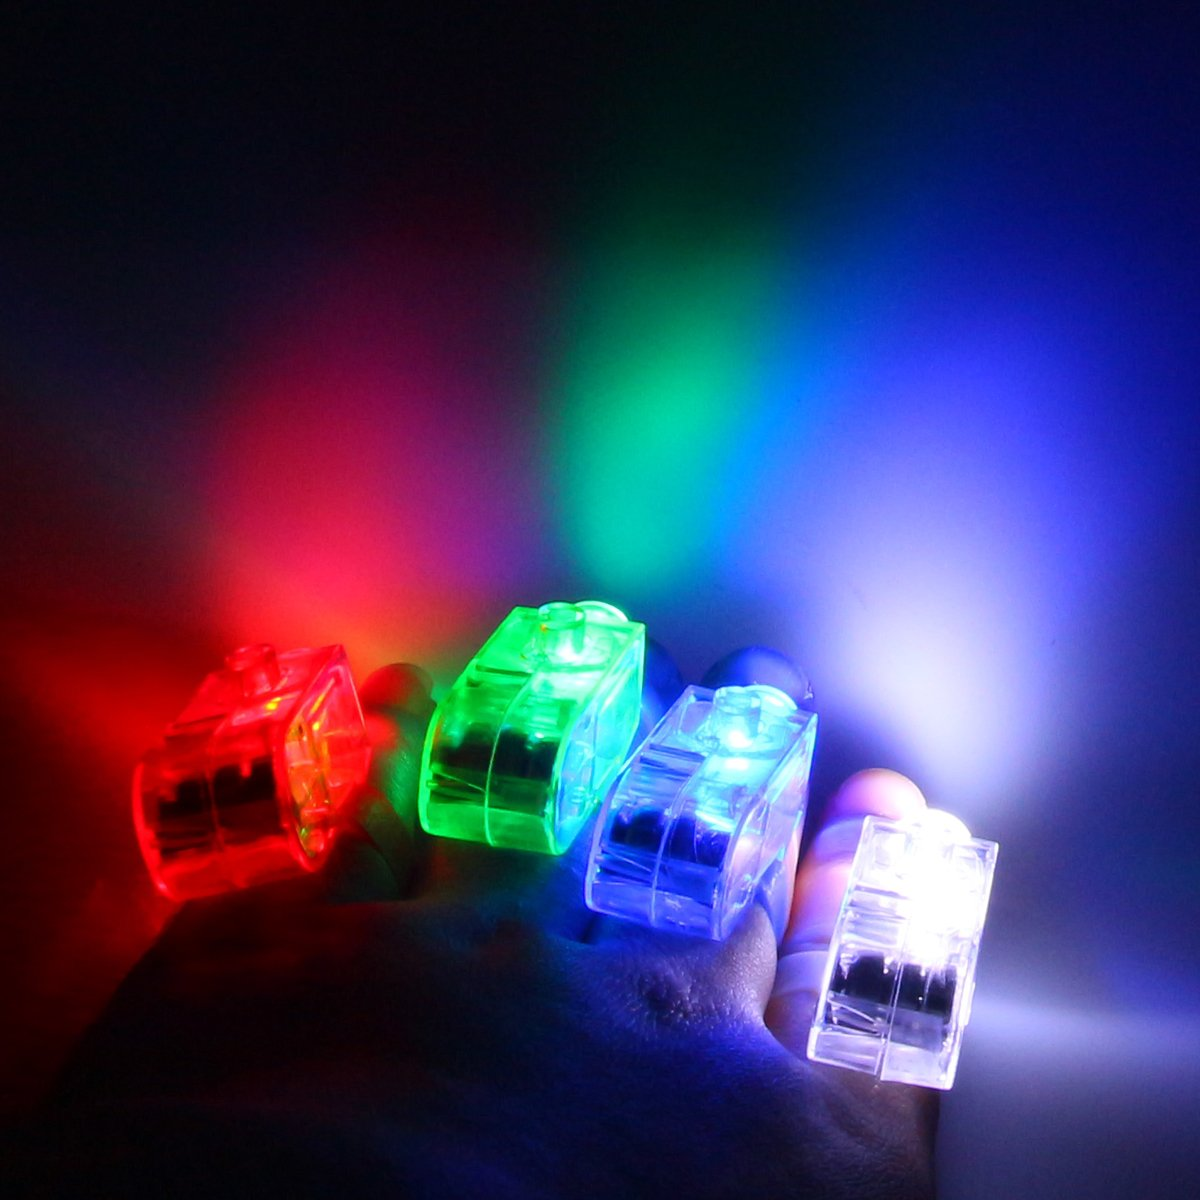 40 in 1 Super Bright Finger Lamp, LED Finger lights, carnival lamp, lighting Music Festival, Party, All Saints, Halloween